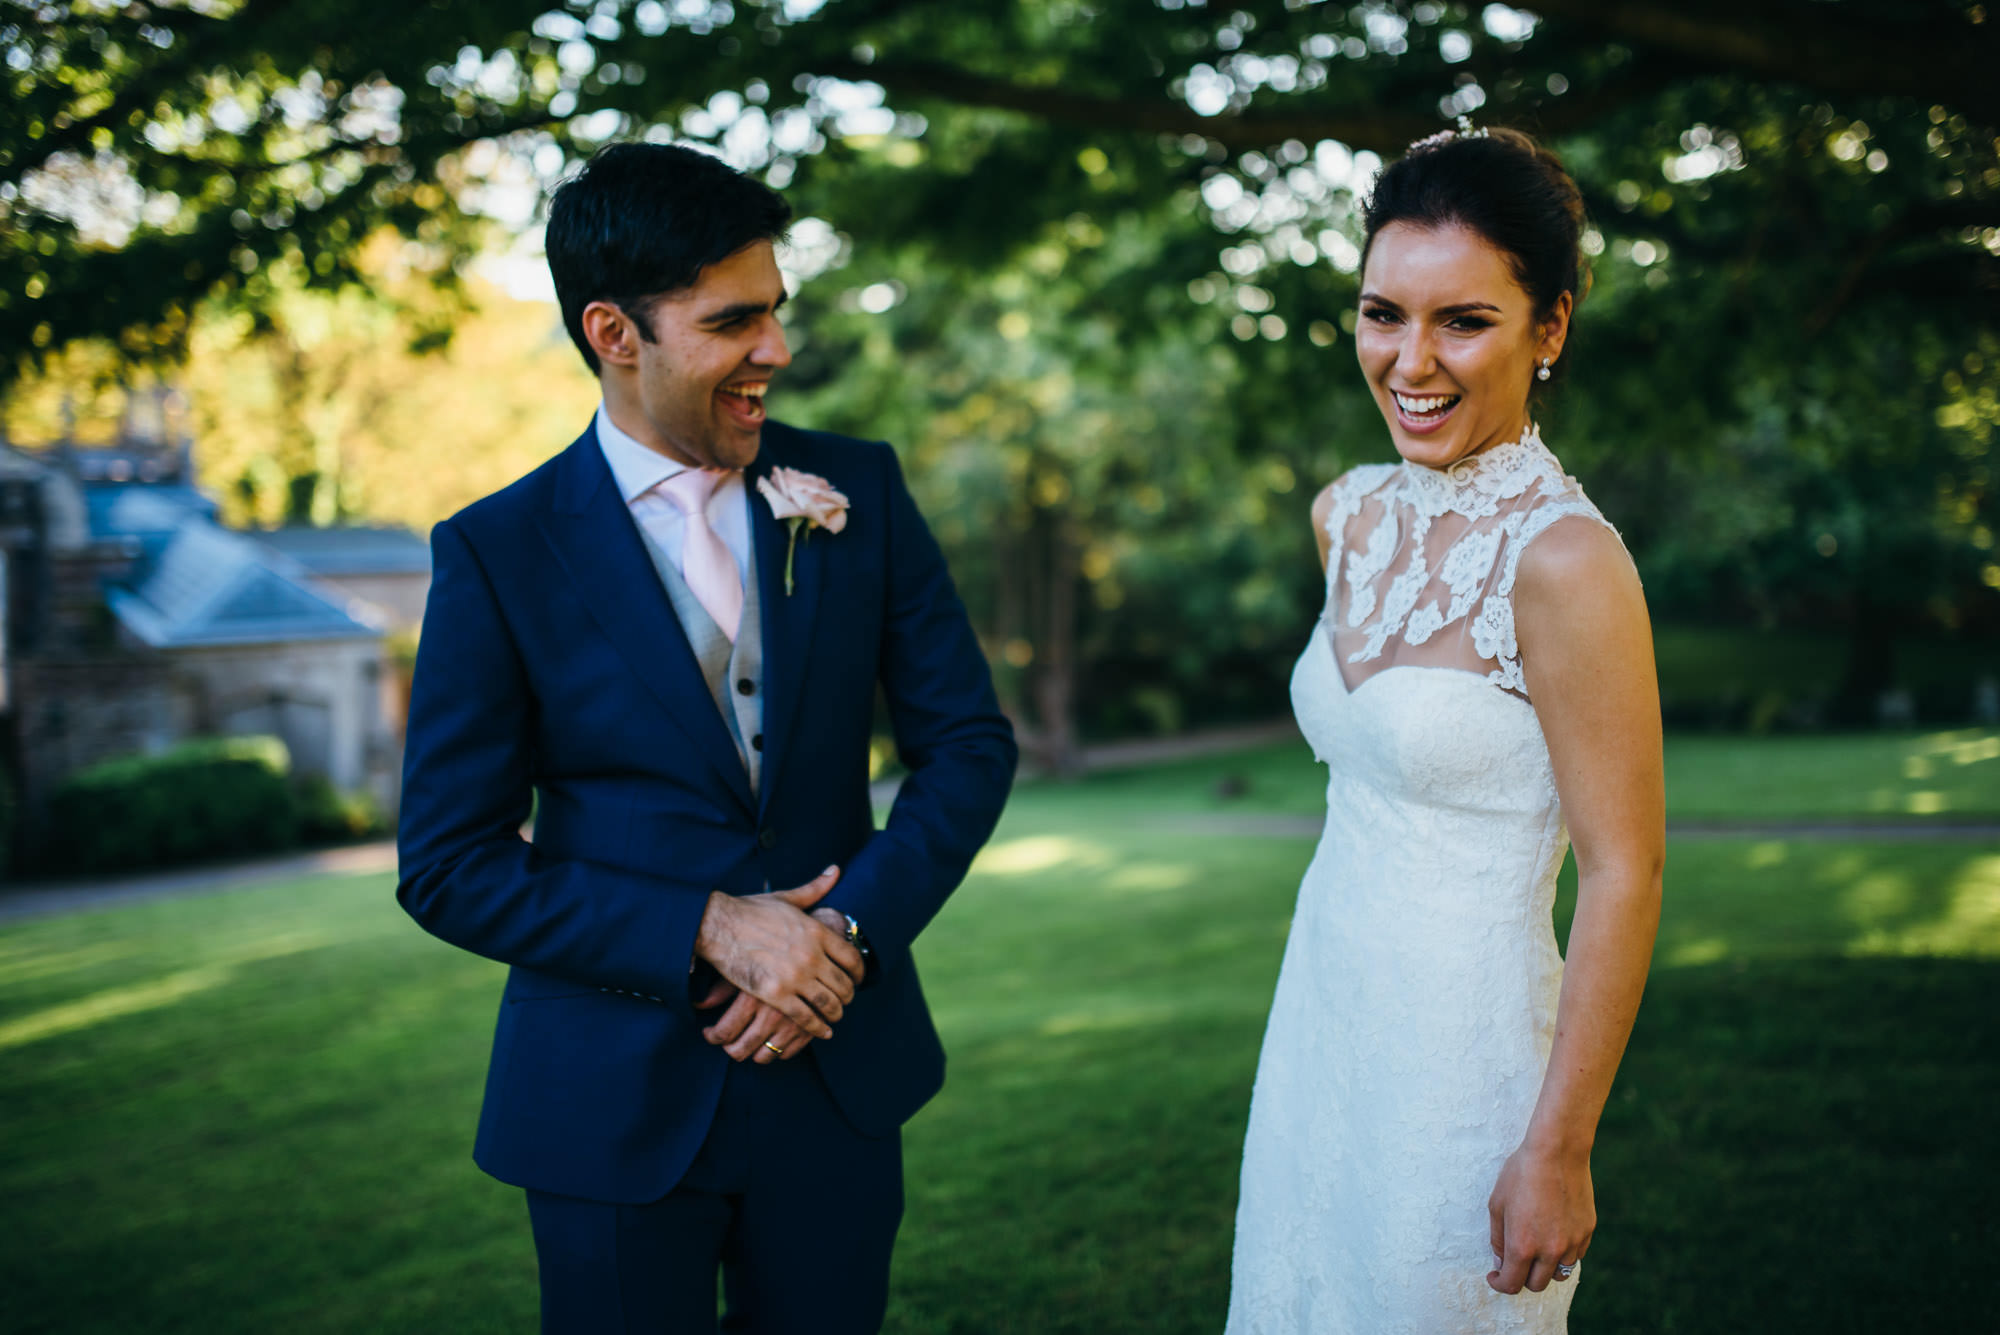 Couple at St Audries Park wedding